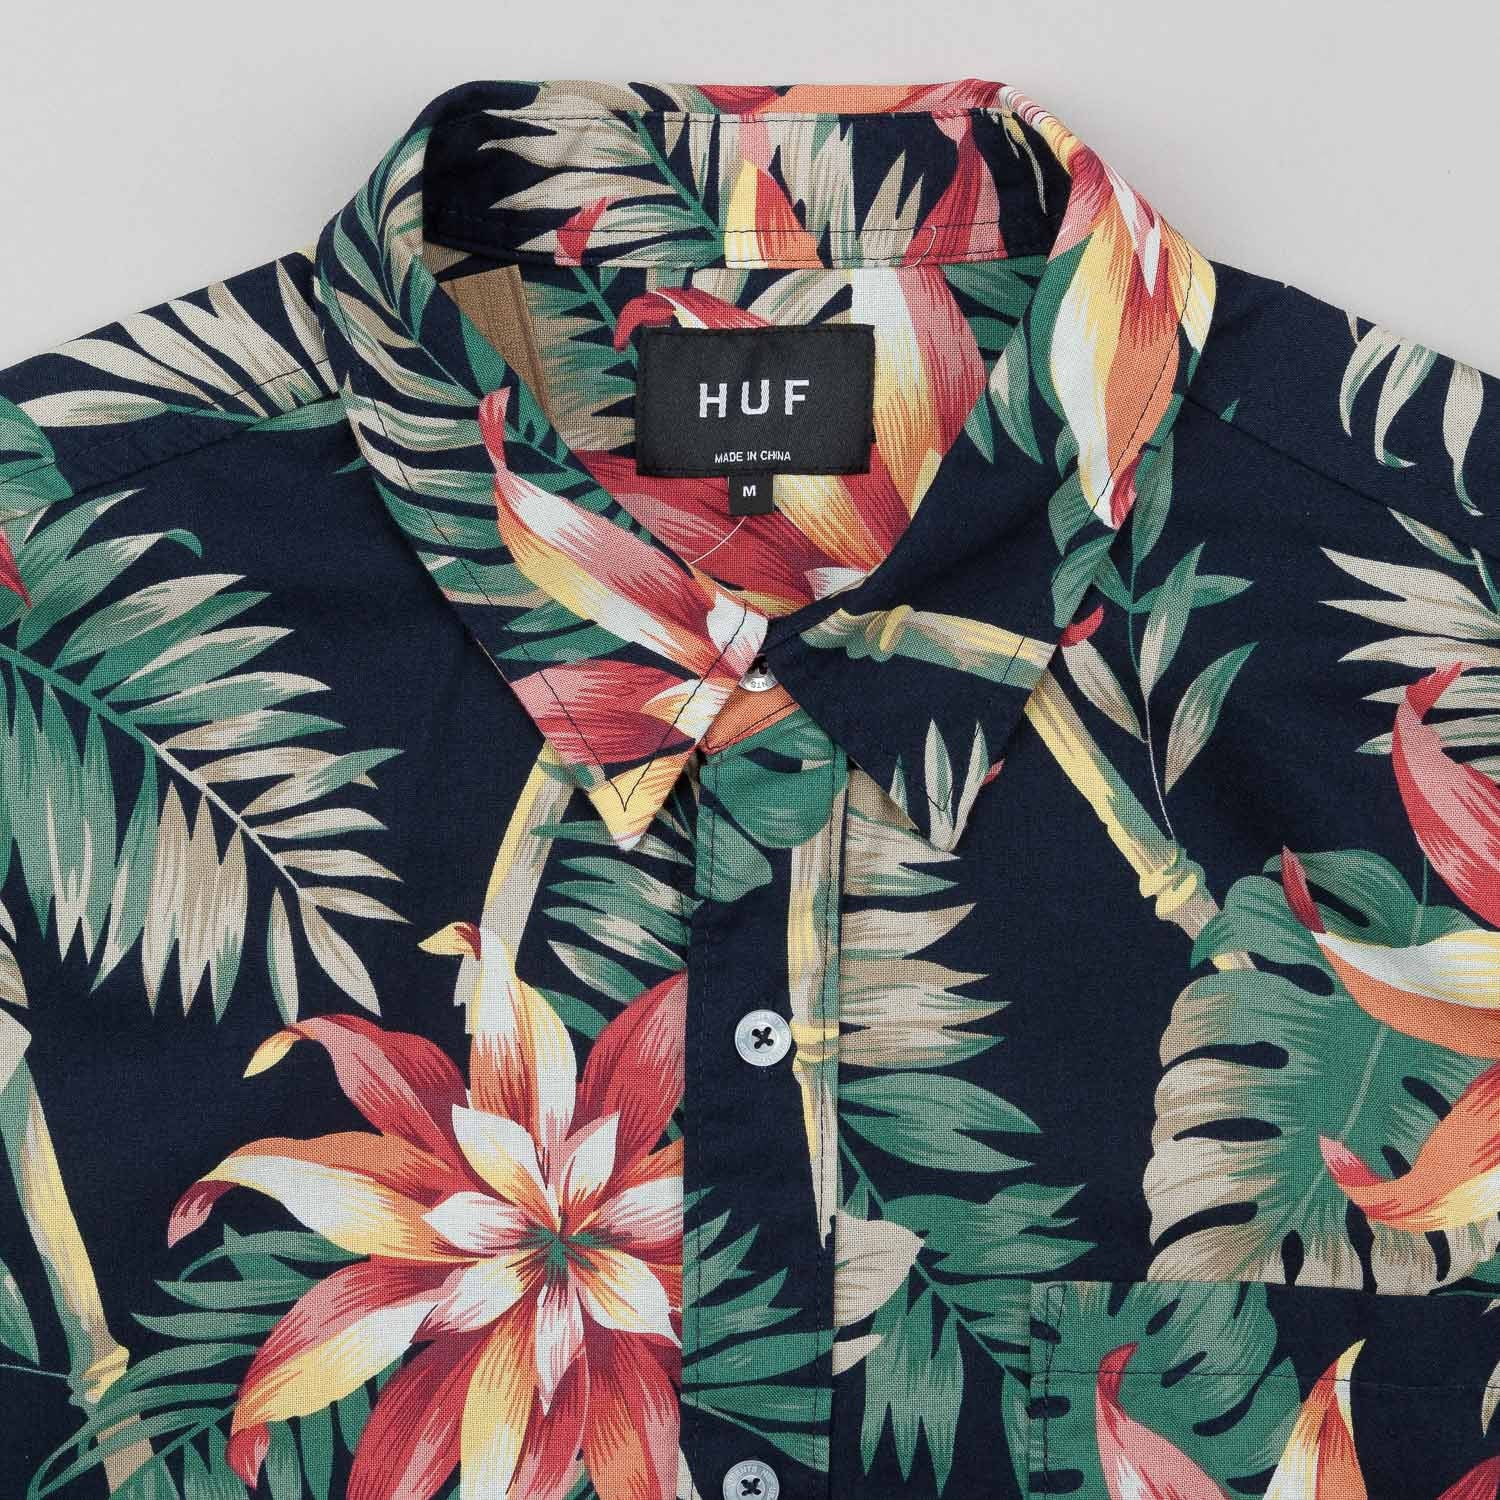 HUF Vintage Tropicana Short Sleeve Button Up Shirt - Black